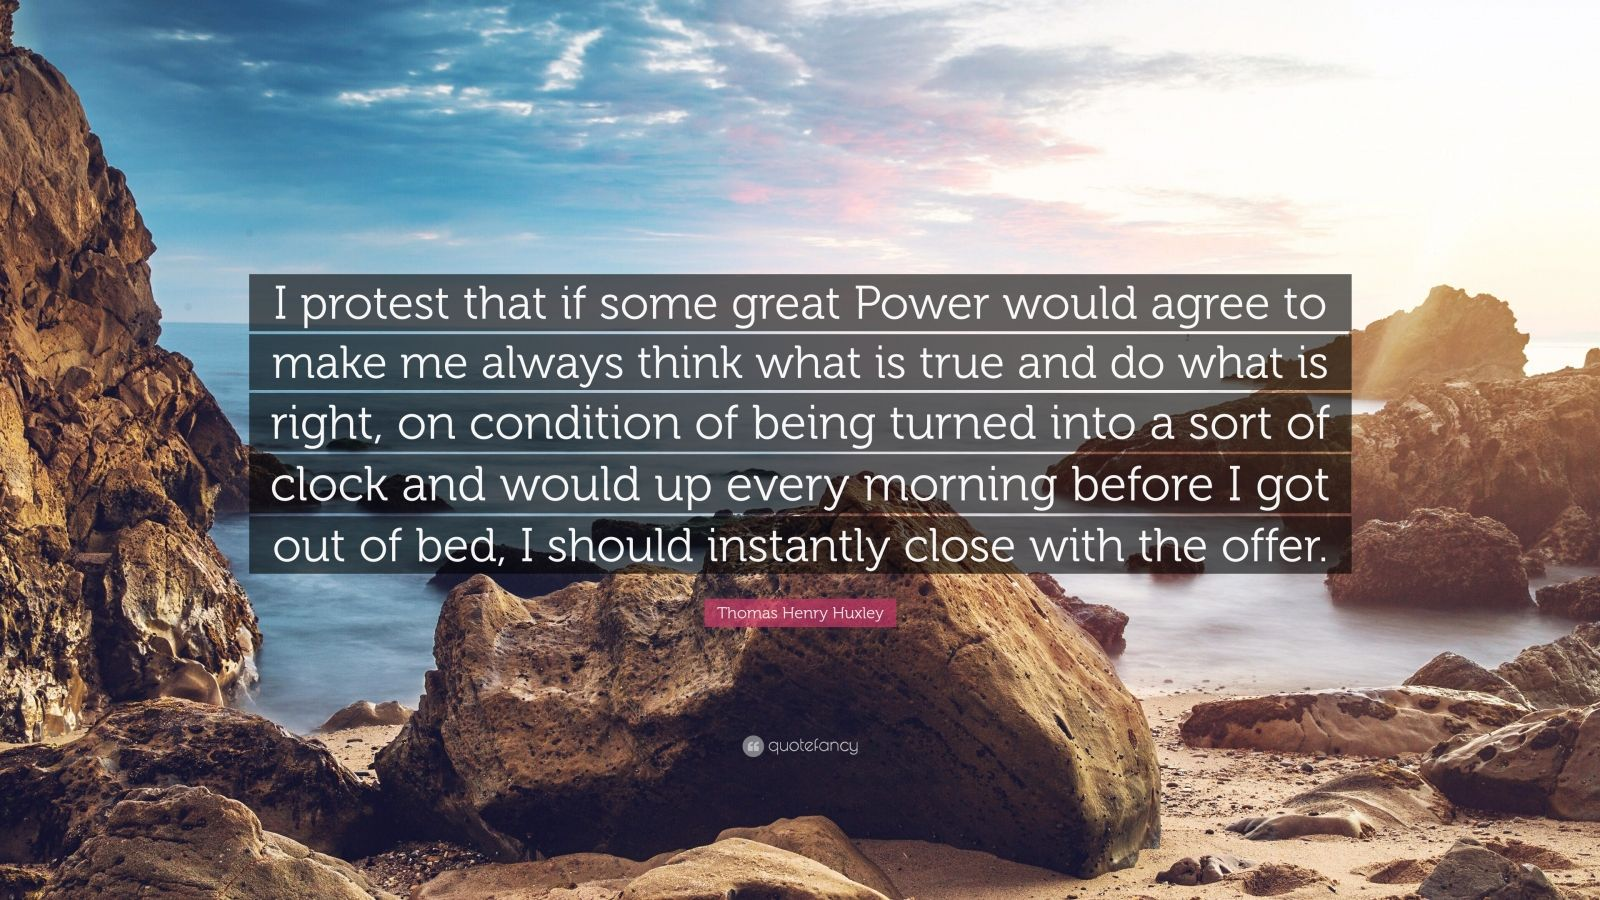 "Thomas Henry Huxley Quote: ""I protest that if some great Power would agree to make me always think what is true and do what is right, on condition of being turned into a sort of clock and would up every morning before I got out of bed, I should instantly close with the offer."""